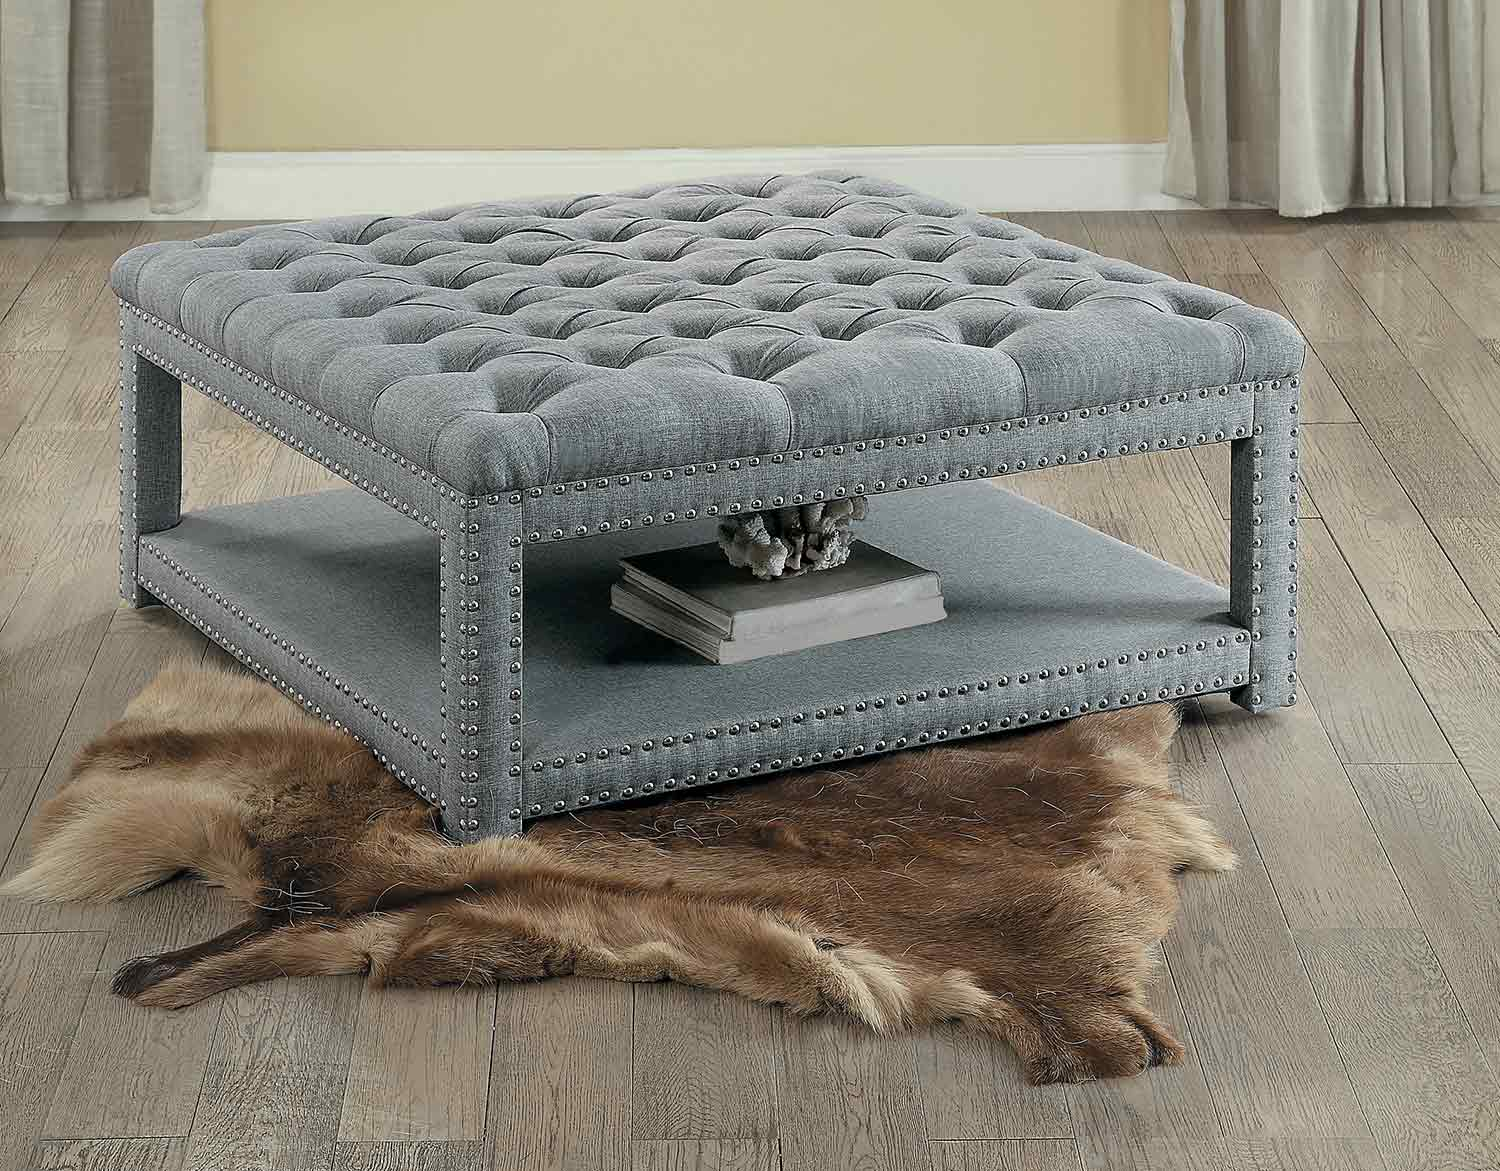 Homelegance Allium Cocktail/Coffee Ottoman - Neutral Gray